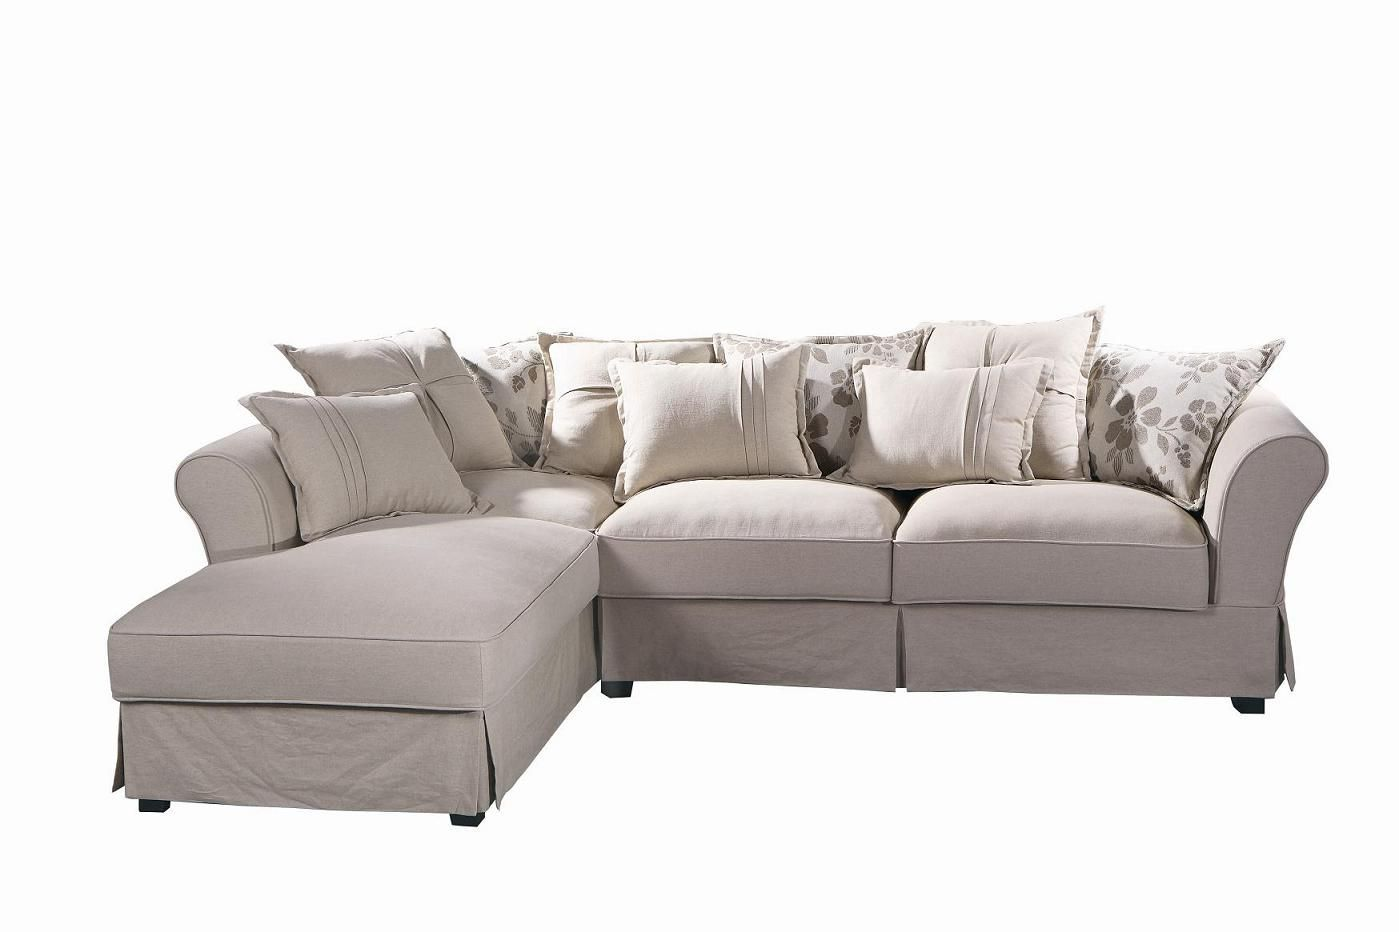 Best affordable sectional sofas in 2018 market for beautiful ...